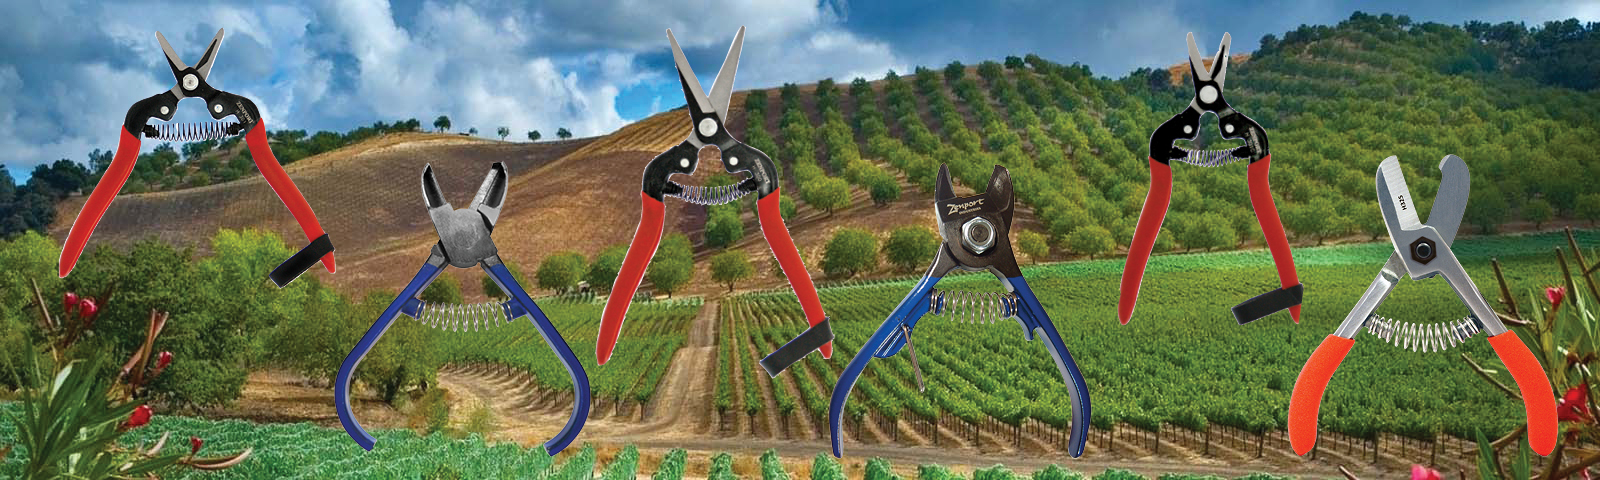 Harvest Shears and Stem Clippers